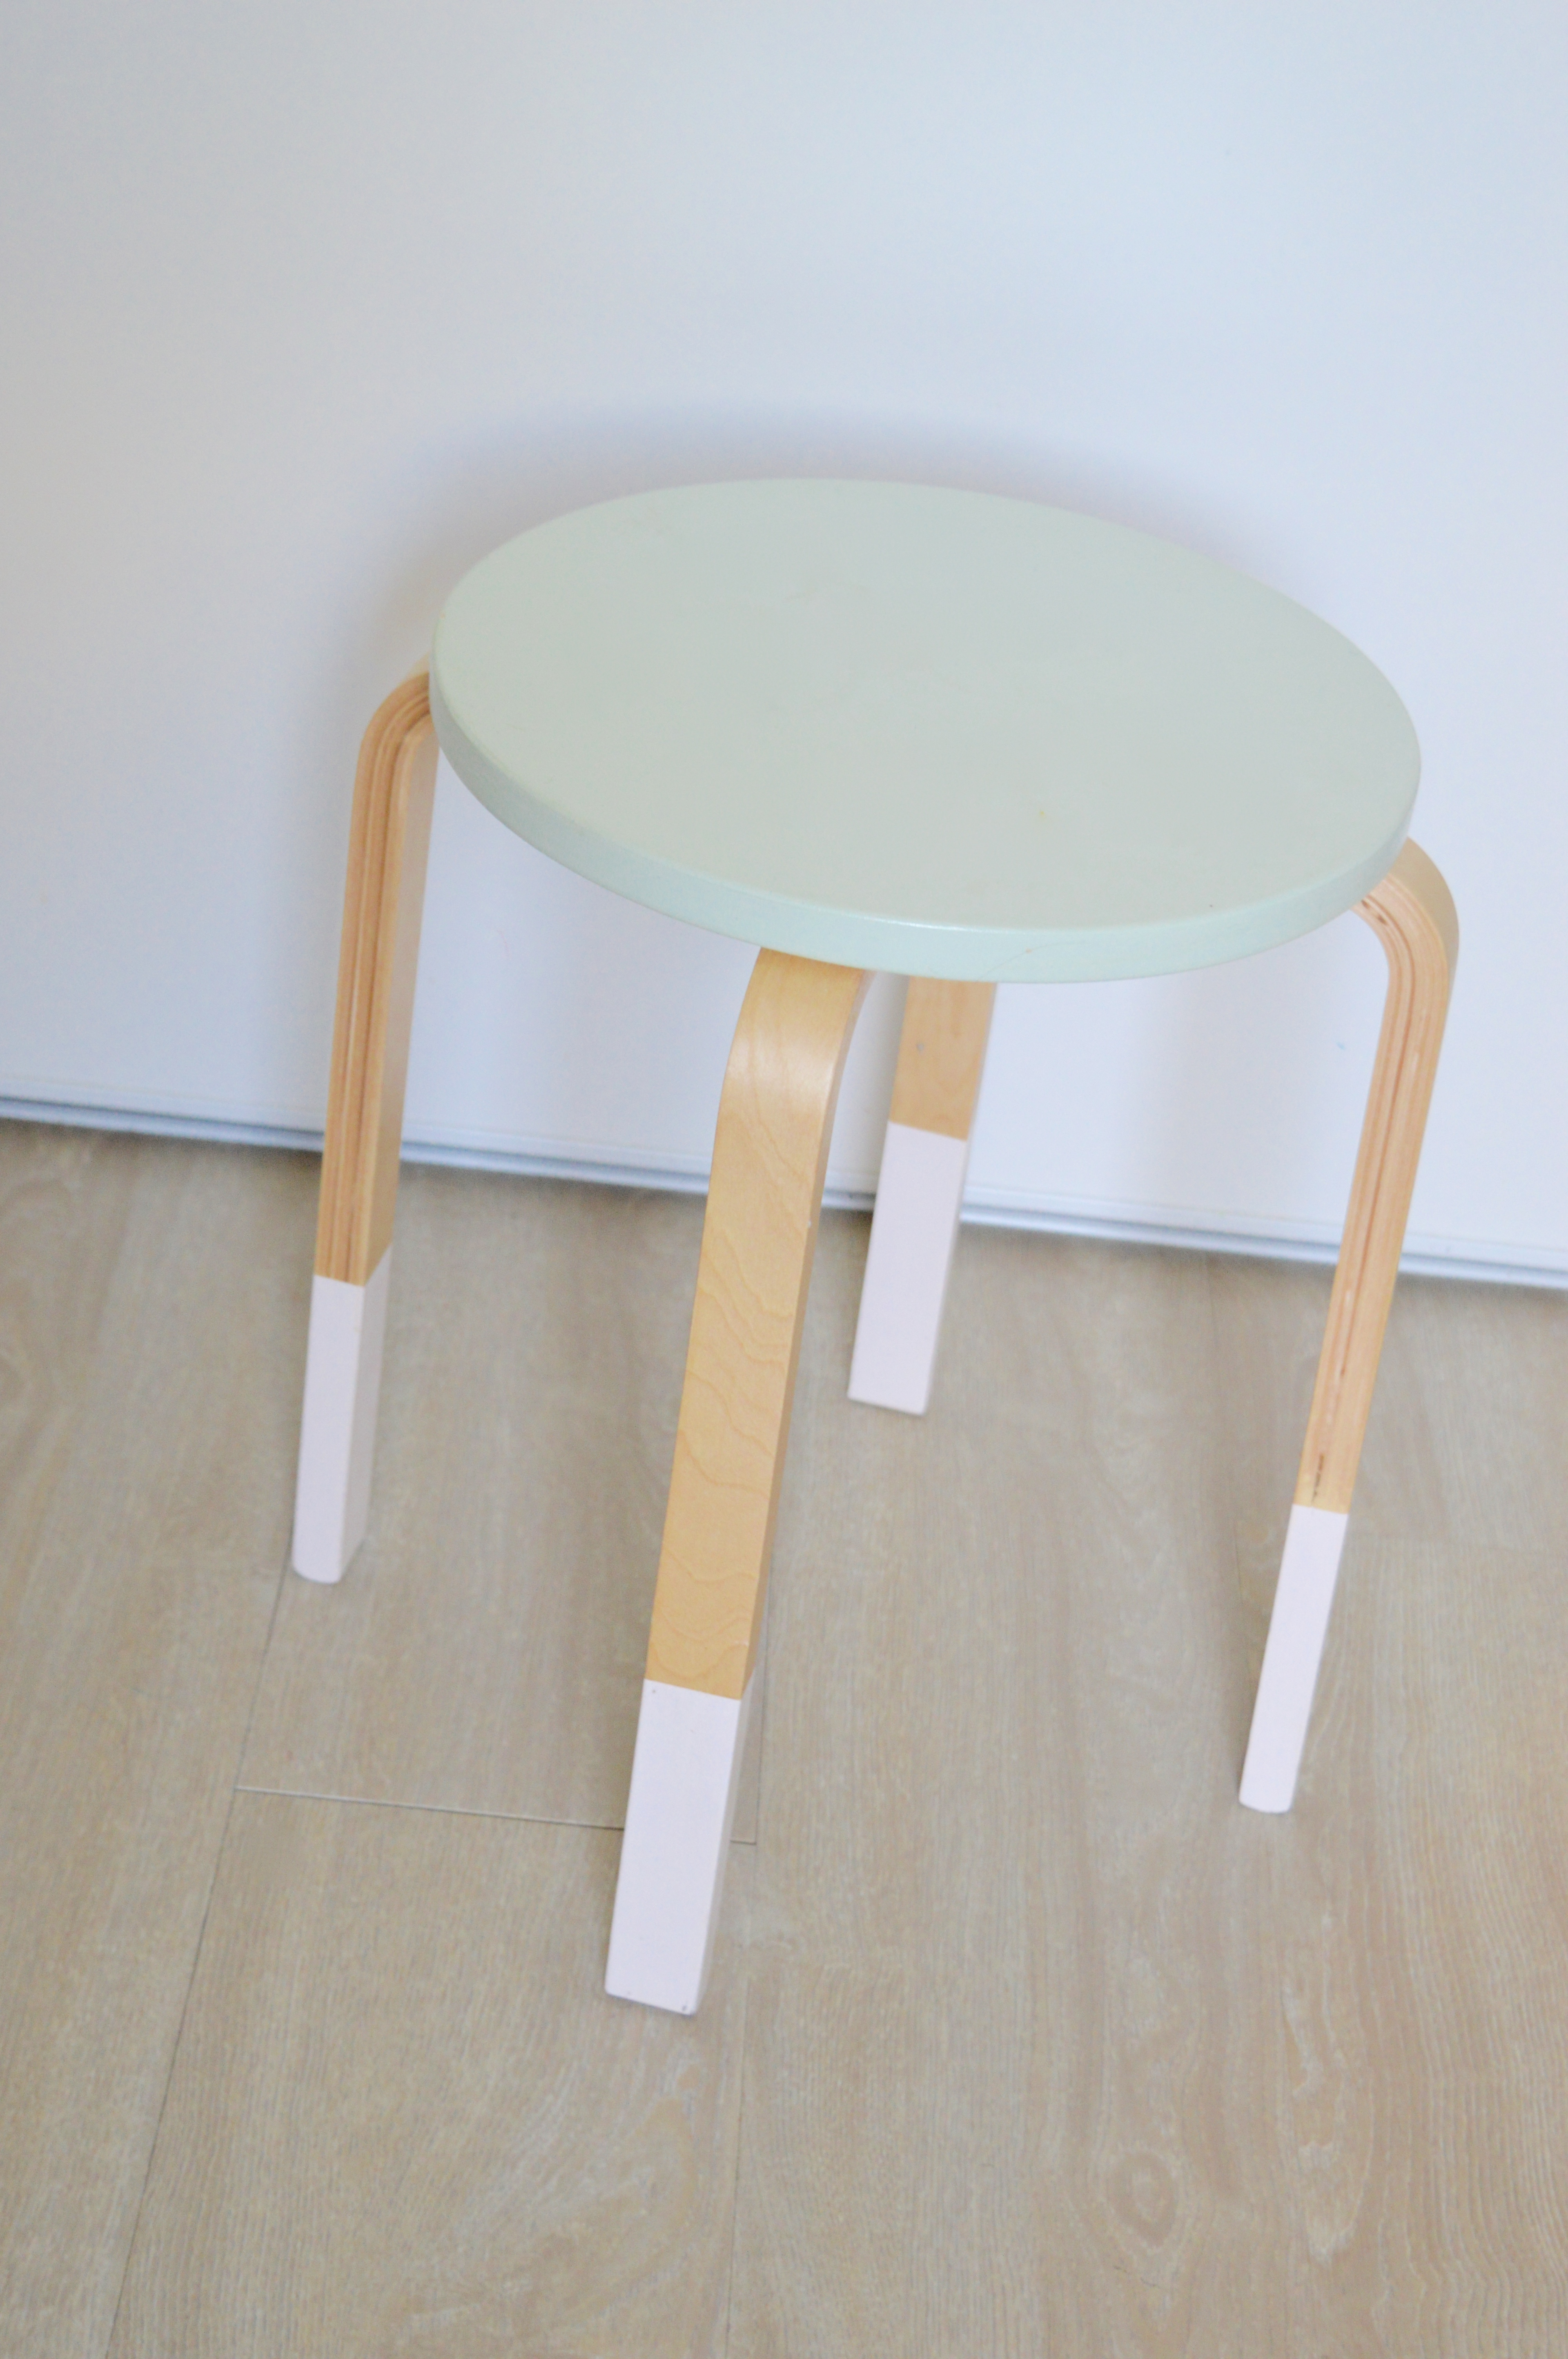 Customiser un tabouret su dois lilou mini brin - Customiser un tabouret ...